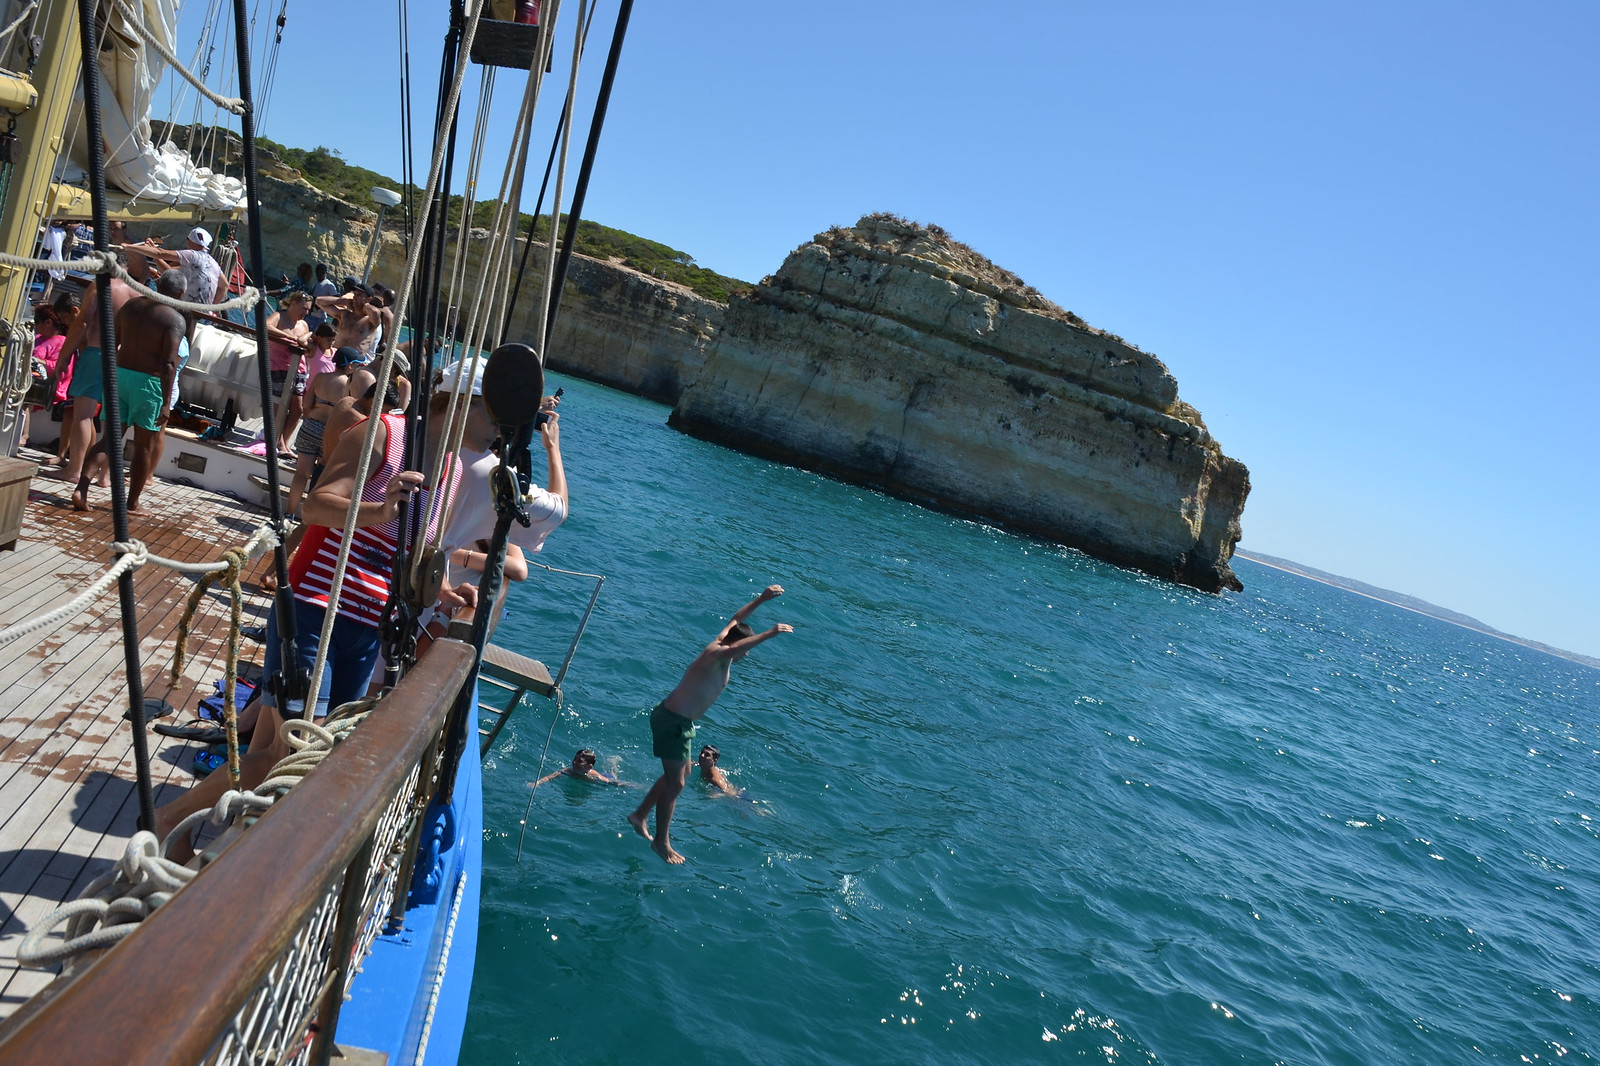 Condor de Vilamoura Jumping from the boat